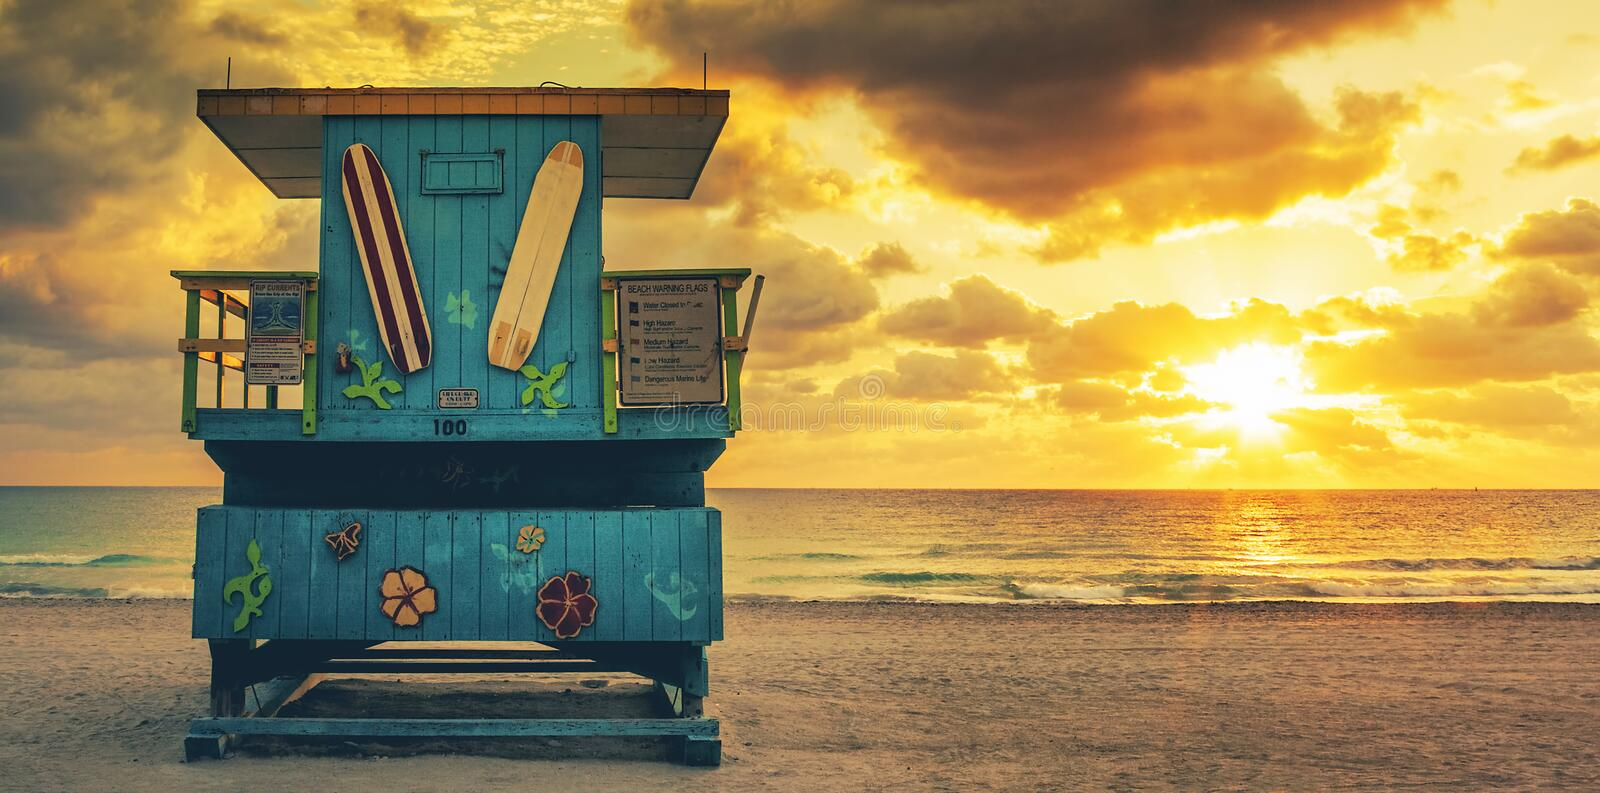 Miami South Beach sunrise with lifeguard tower. USA stock photography